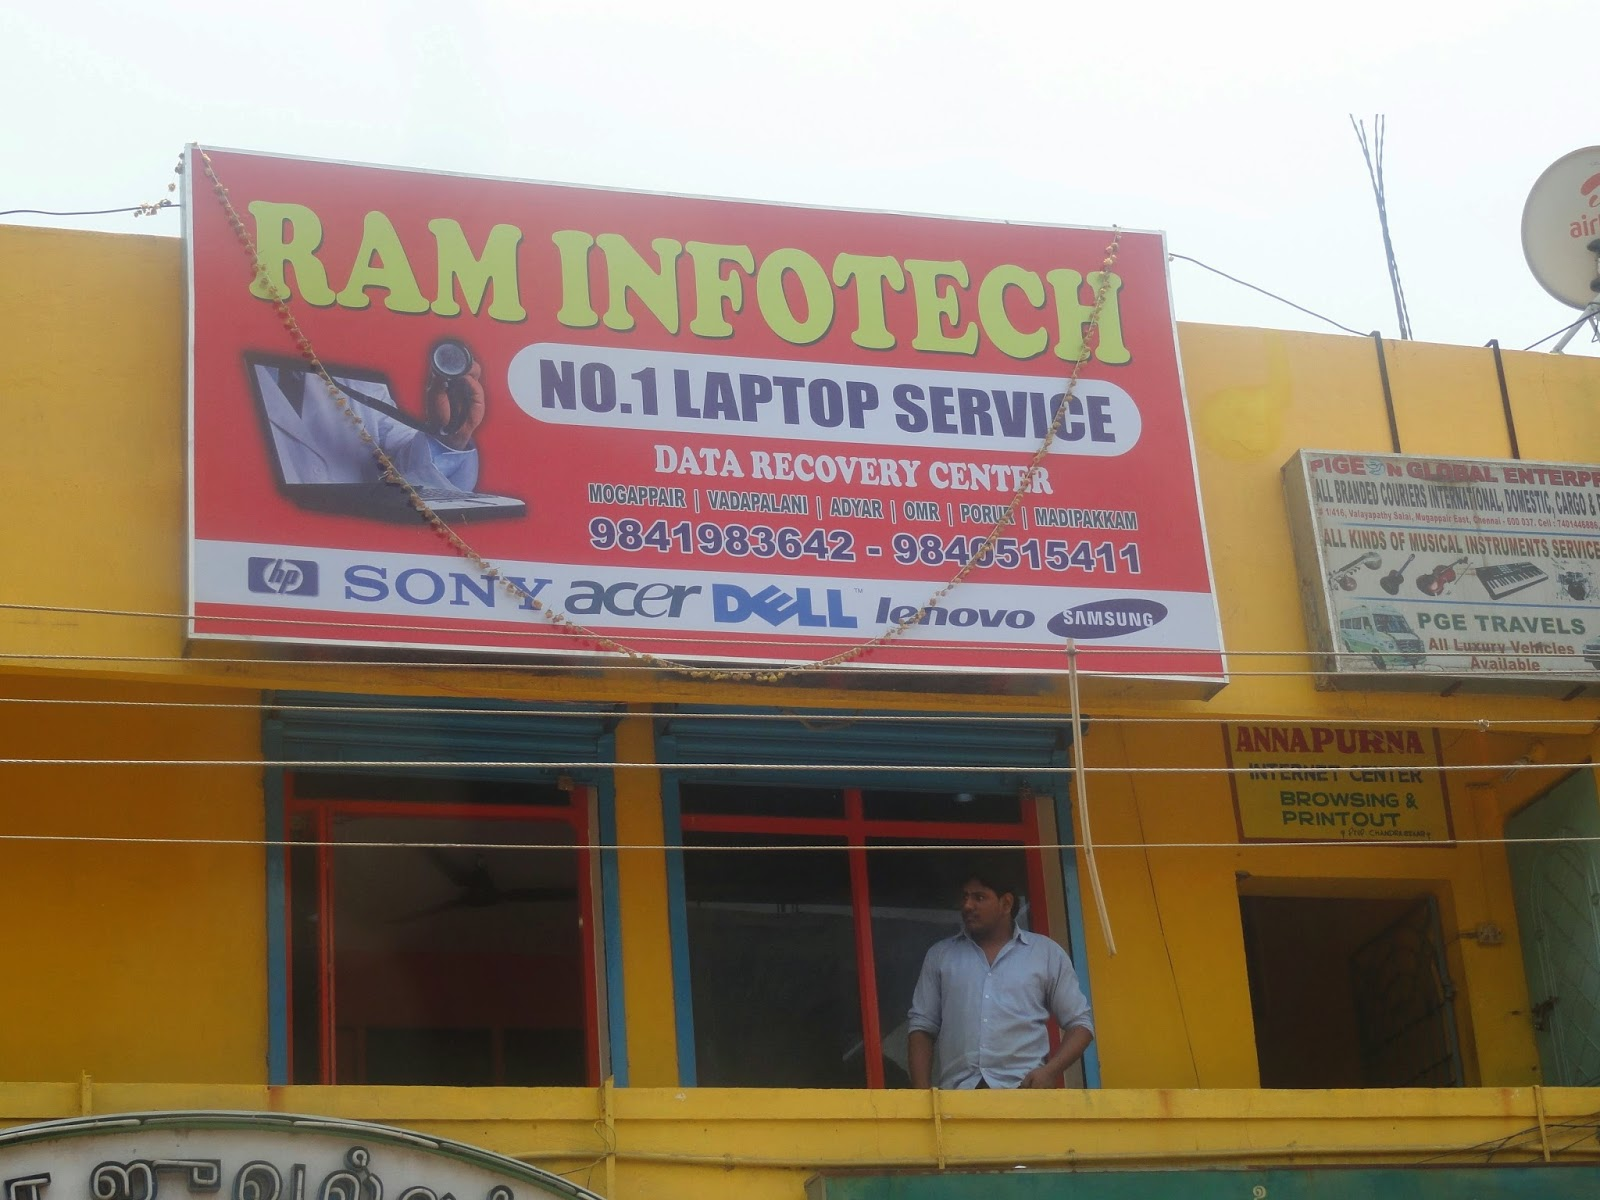 Sofa Set Repair Services In Porur Ram Infotech No 1 Laptop Service Center In Chennai